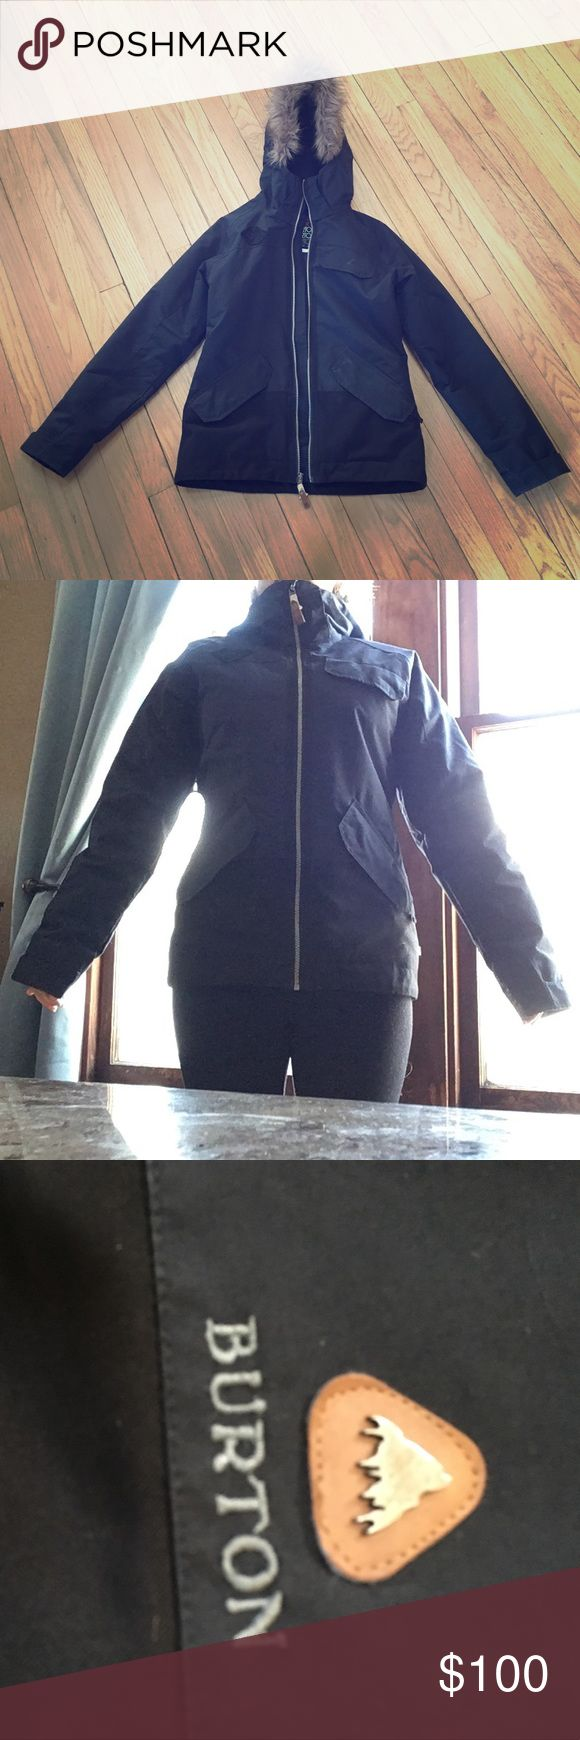 Burton snowboard jacket Burton snowboard black jacket in great condition. This is from Burton's dry ride series. It's an awesome coat that keeps you warm, just doesn't fit me anymore. Fits true to size. Burton Jackets & Coats